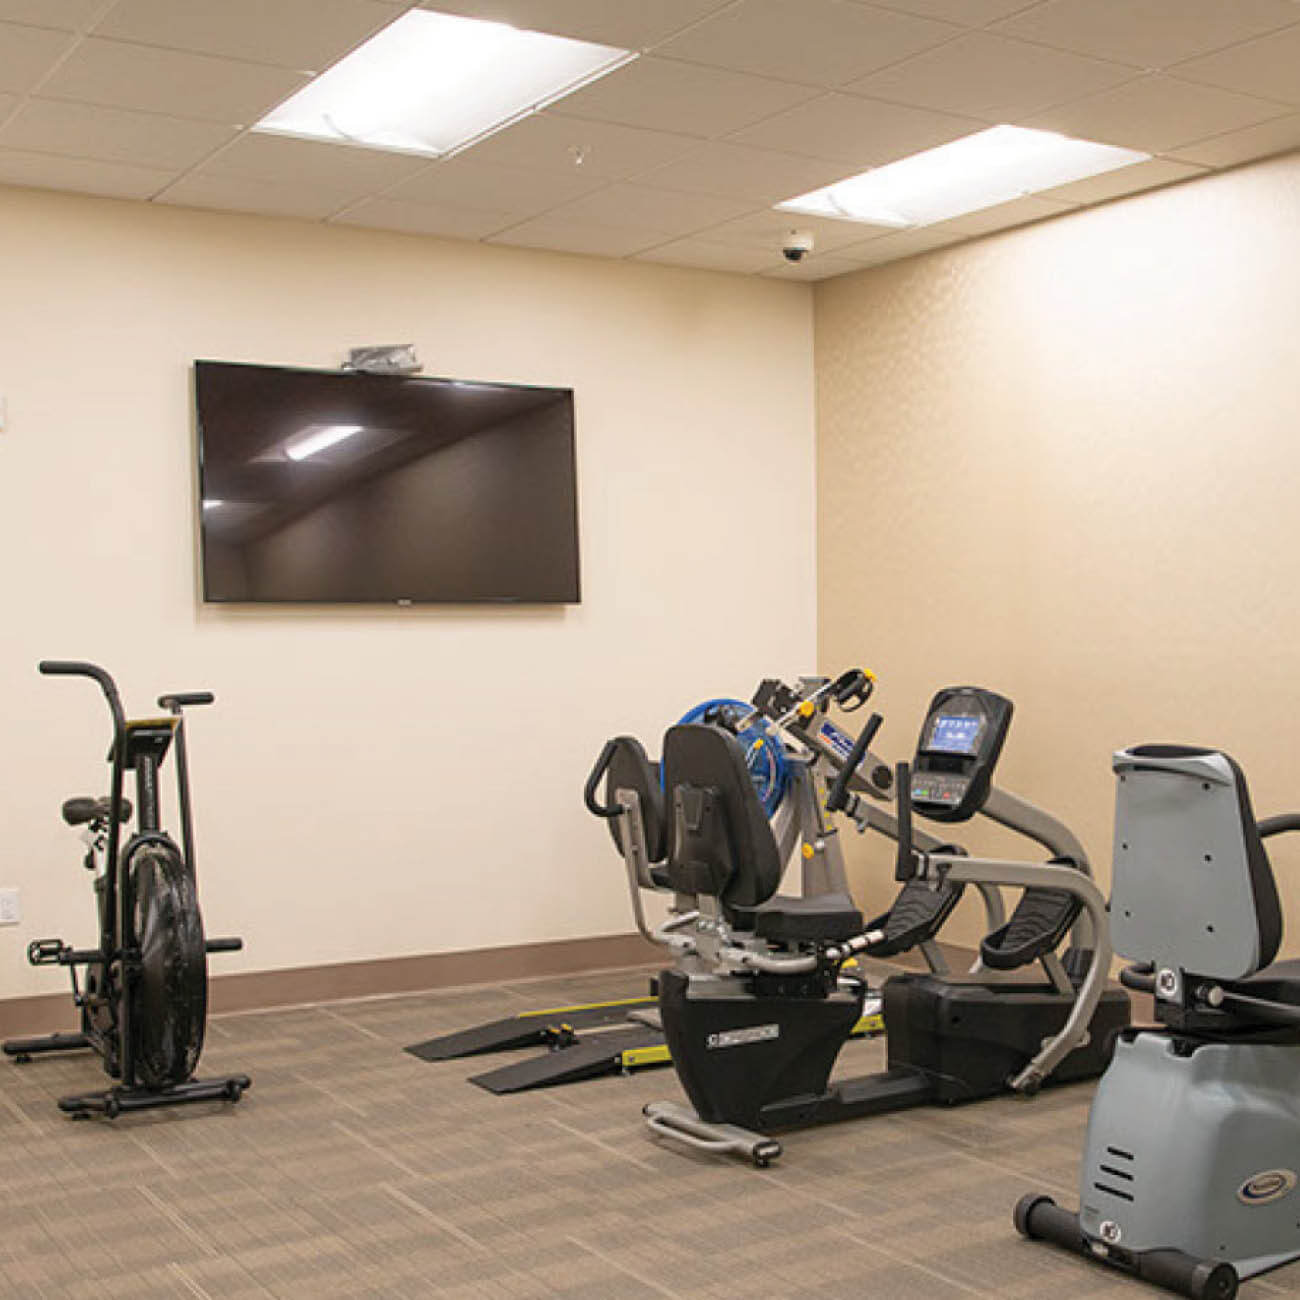 Workout room with large TV and multiple fitness machines, including treadmill, stationary bike among others.